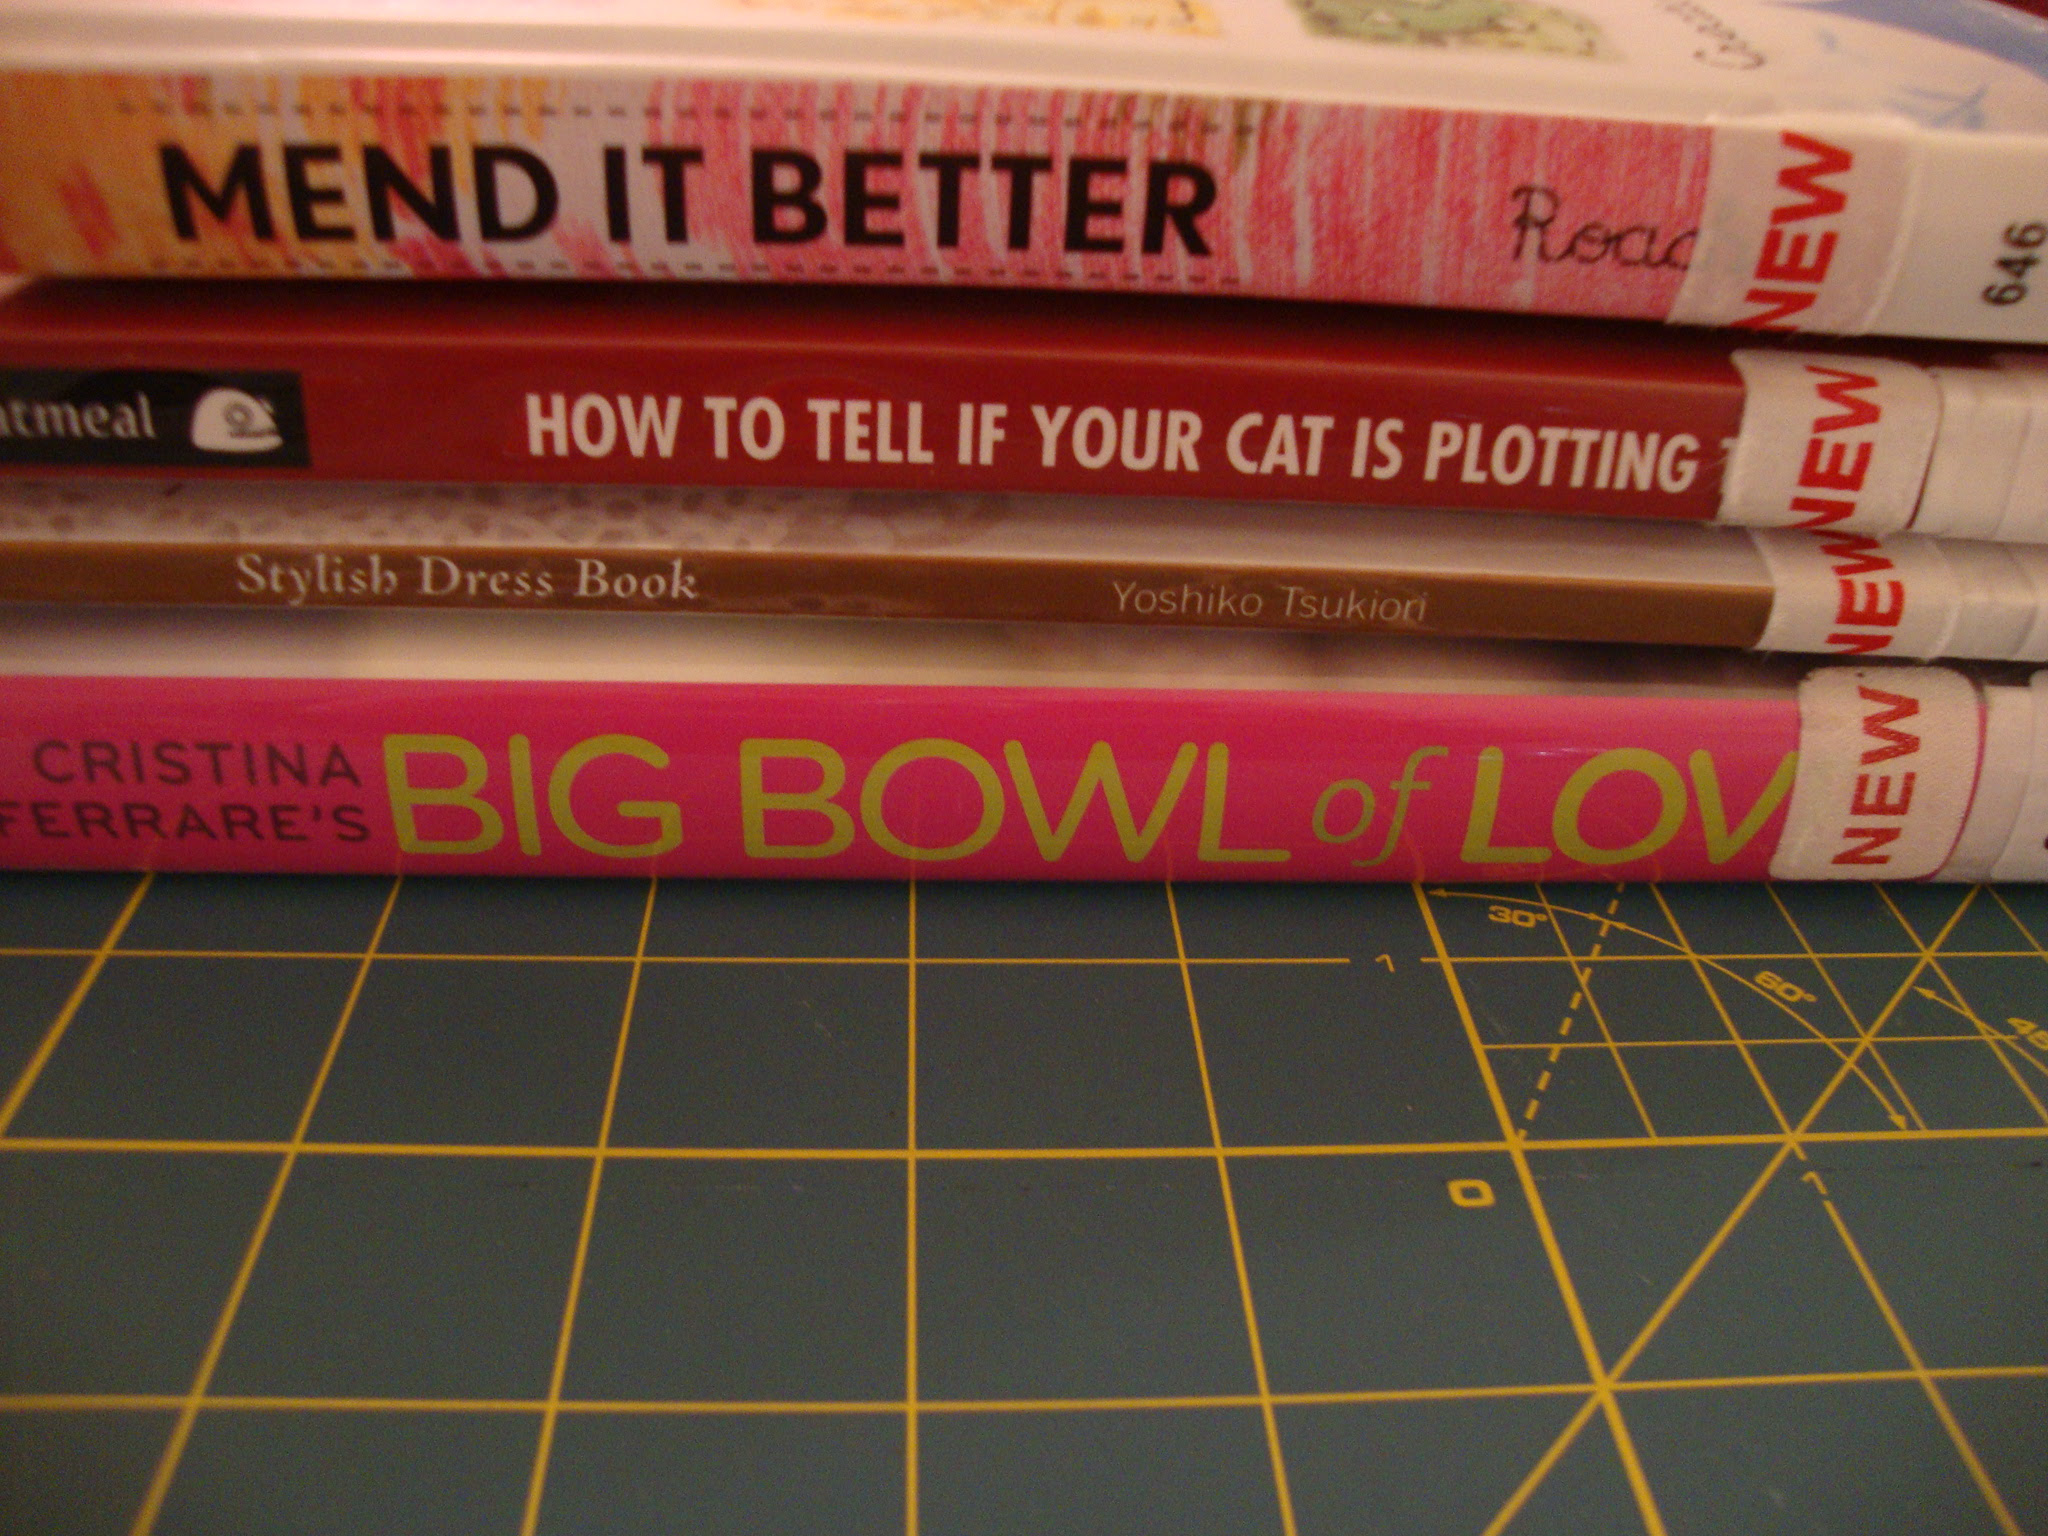 Princeton Public Library books this week